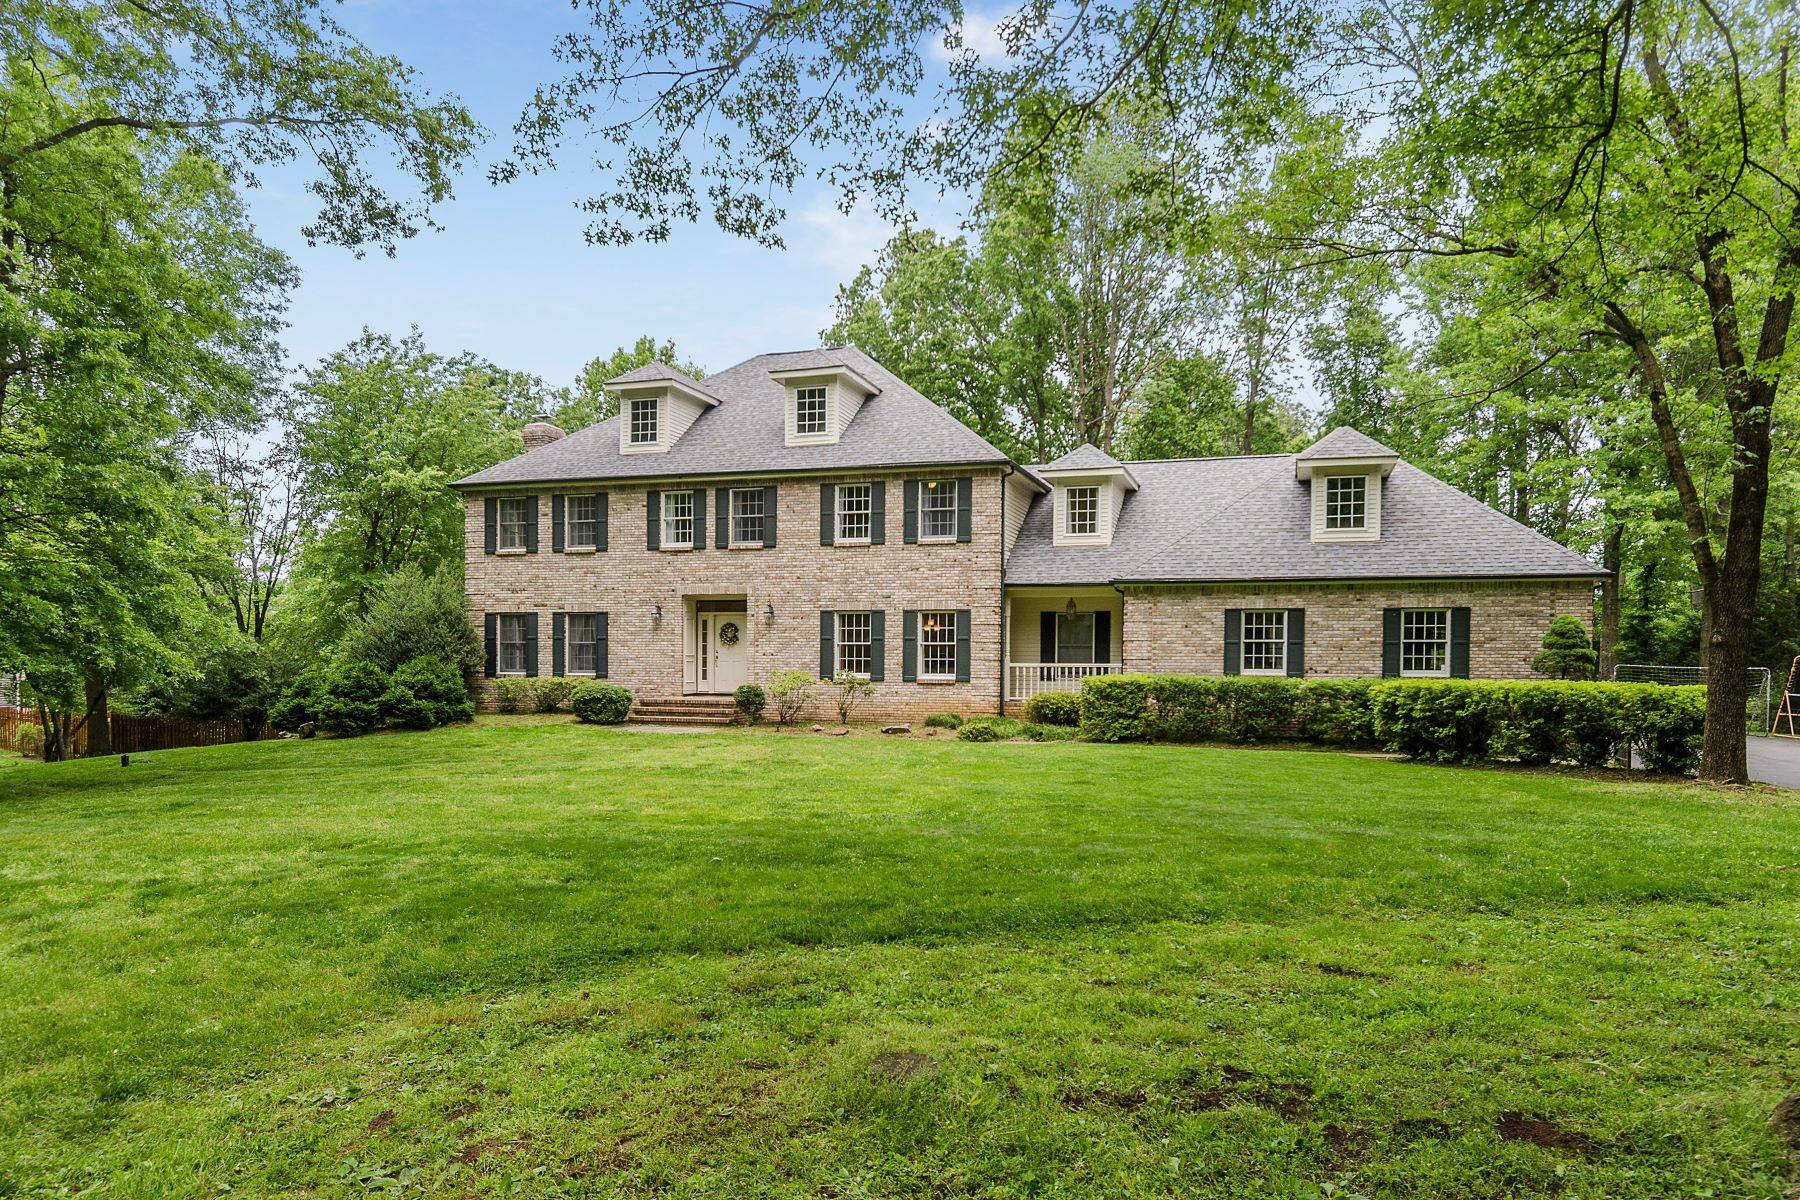 Property for Sale at Distinctive Princeton Colonial in Tranquil Setting 210 Arreton Road, Princeton, New Jersey 08540 United States